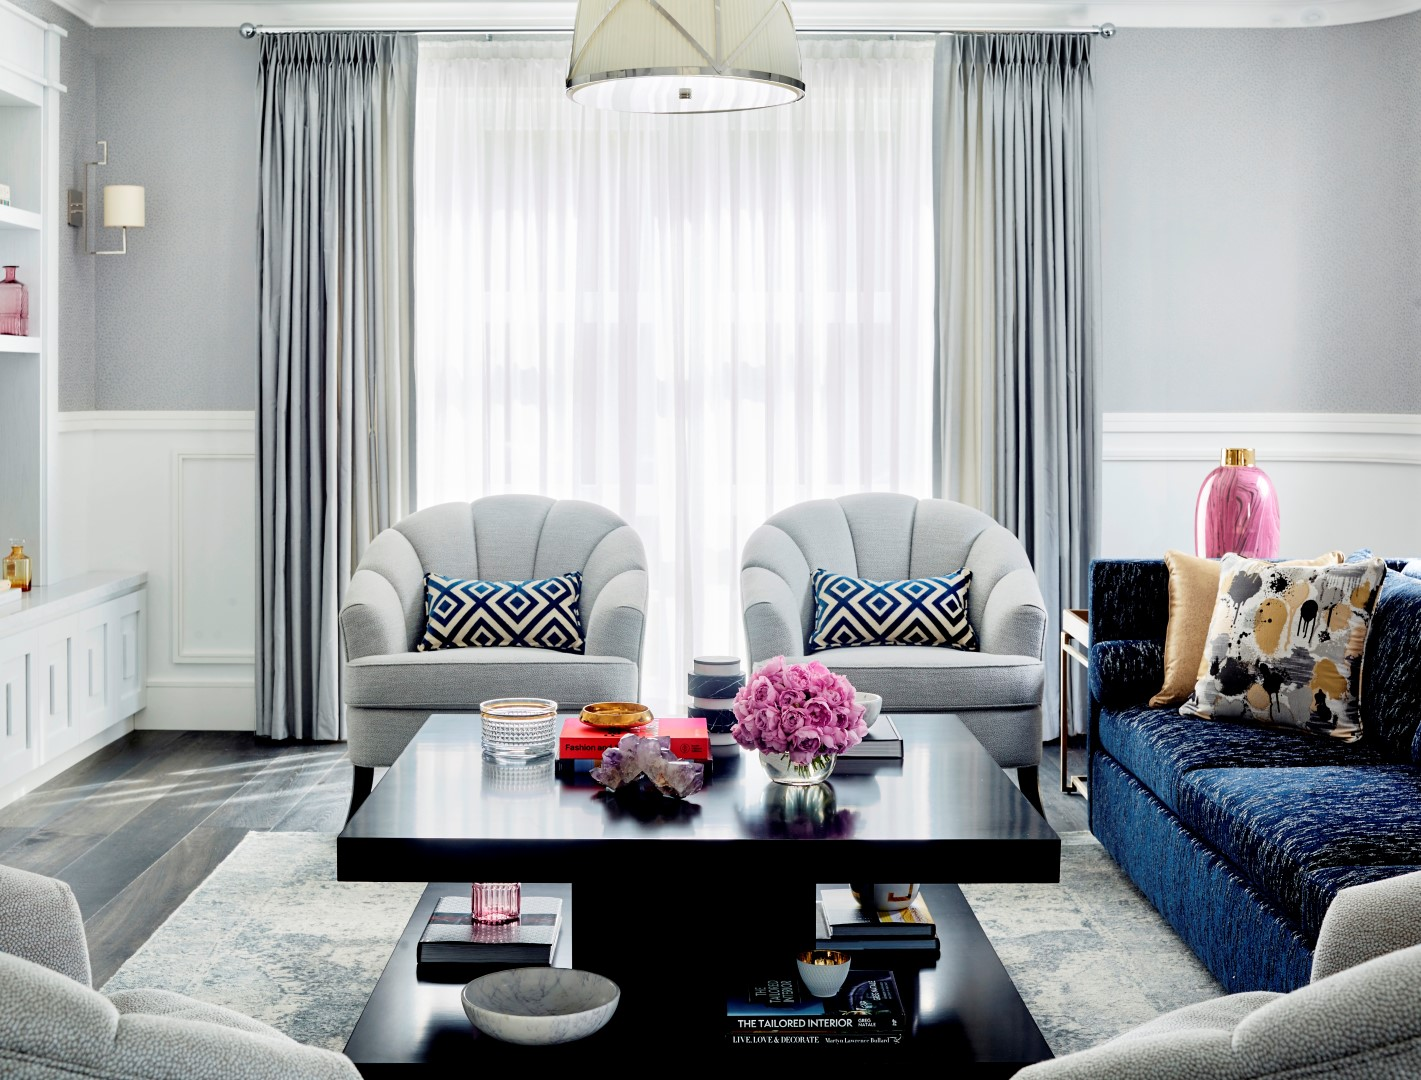 Luxury Forever Home Design In Sydneyu0027s Plush Rose Bay Area By Greg Natale